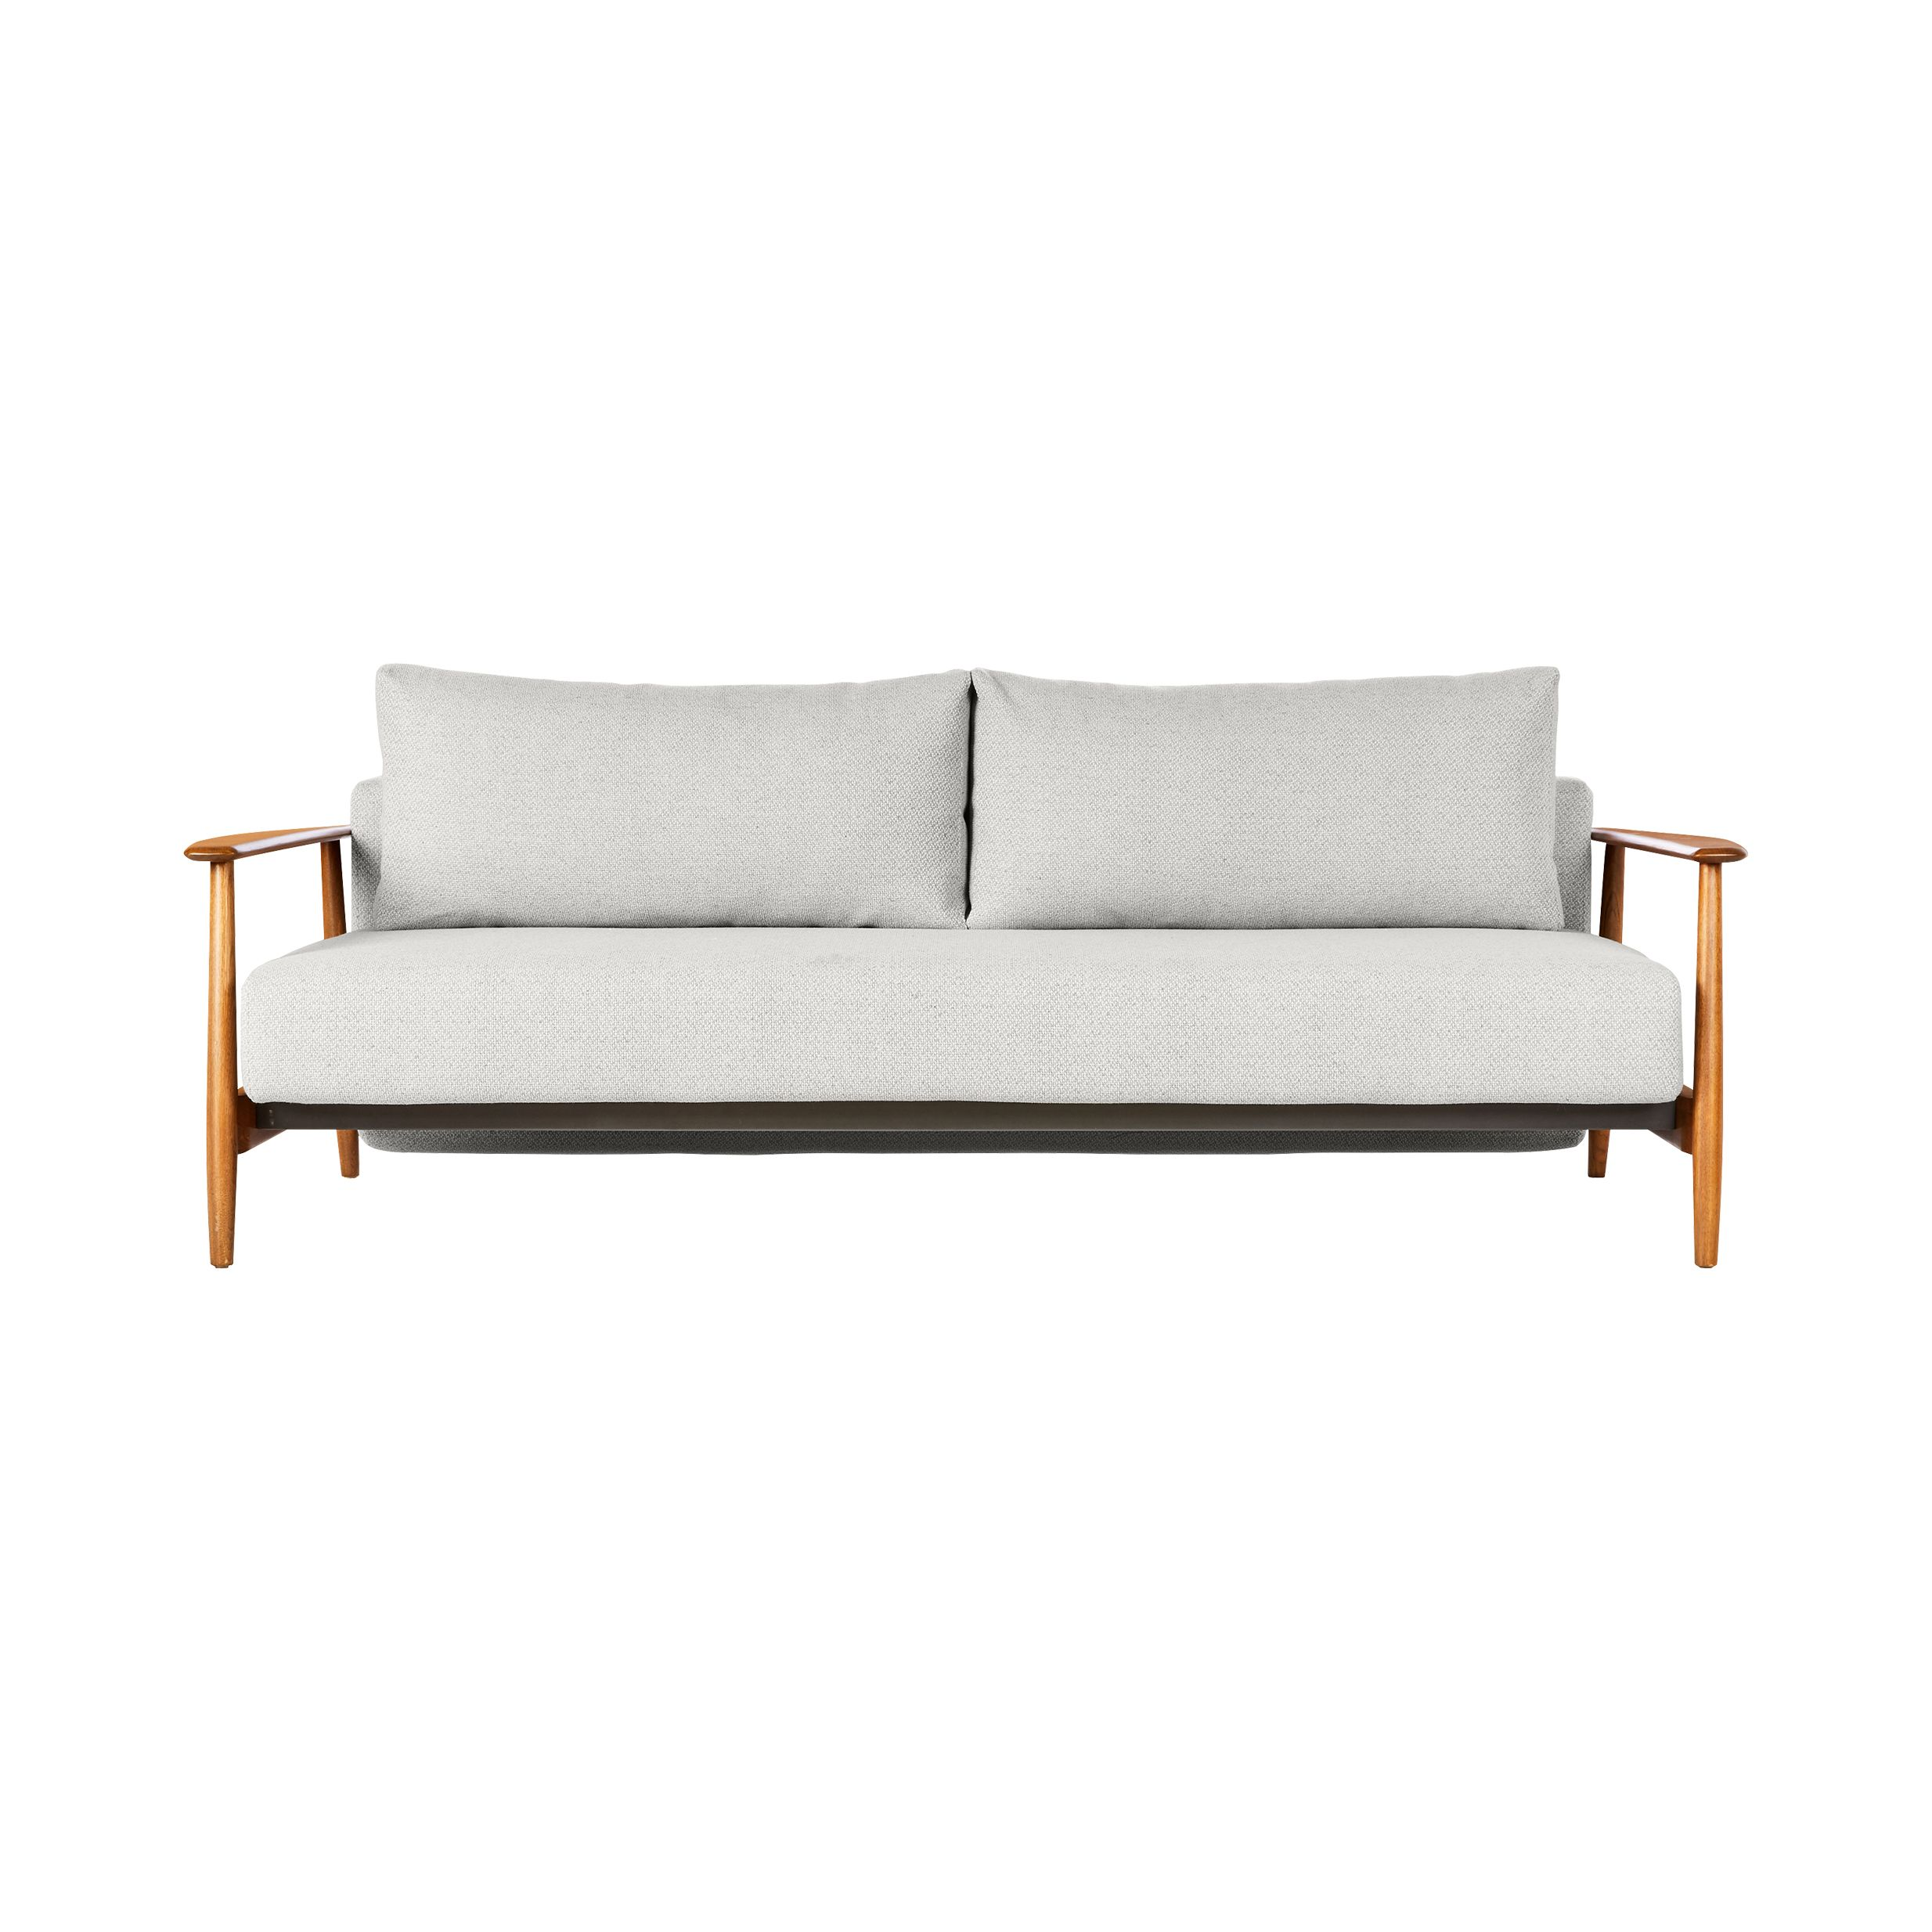 These Exposed Wood Frame Sofas Are A Minimalist S Must Haves Sunset Magazine